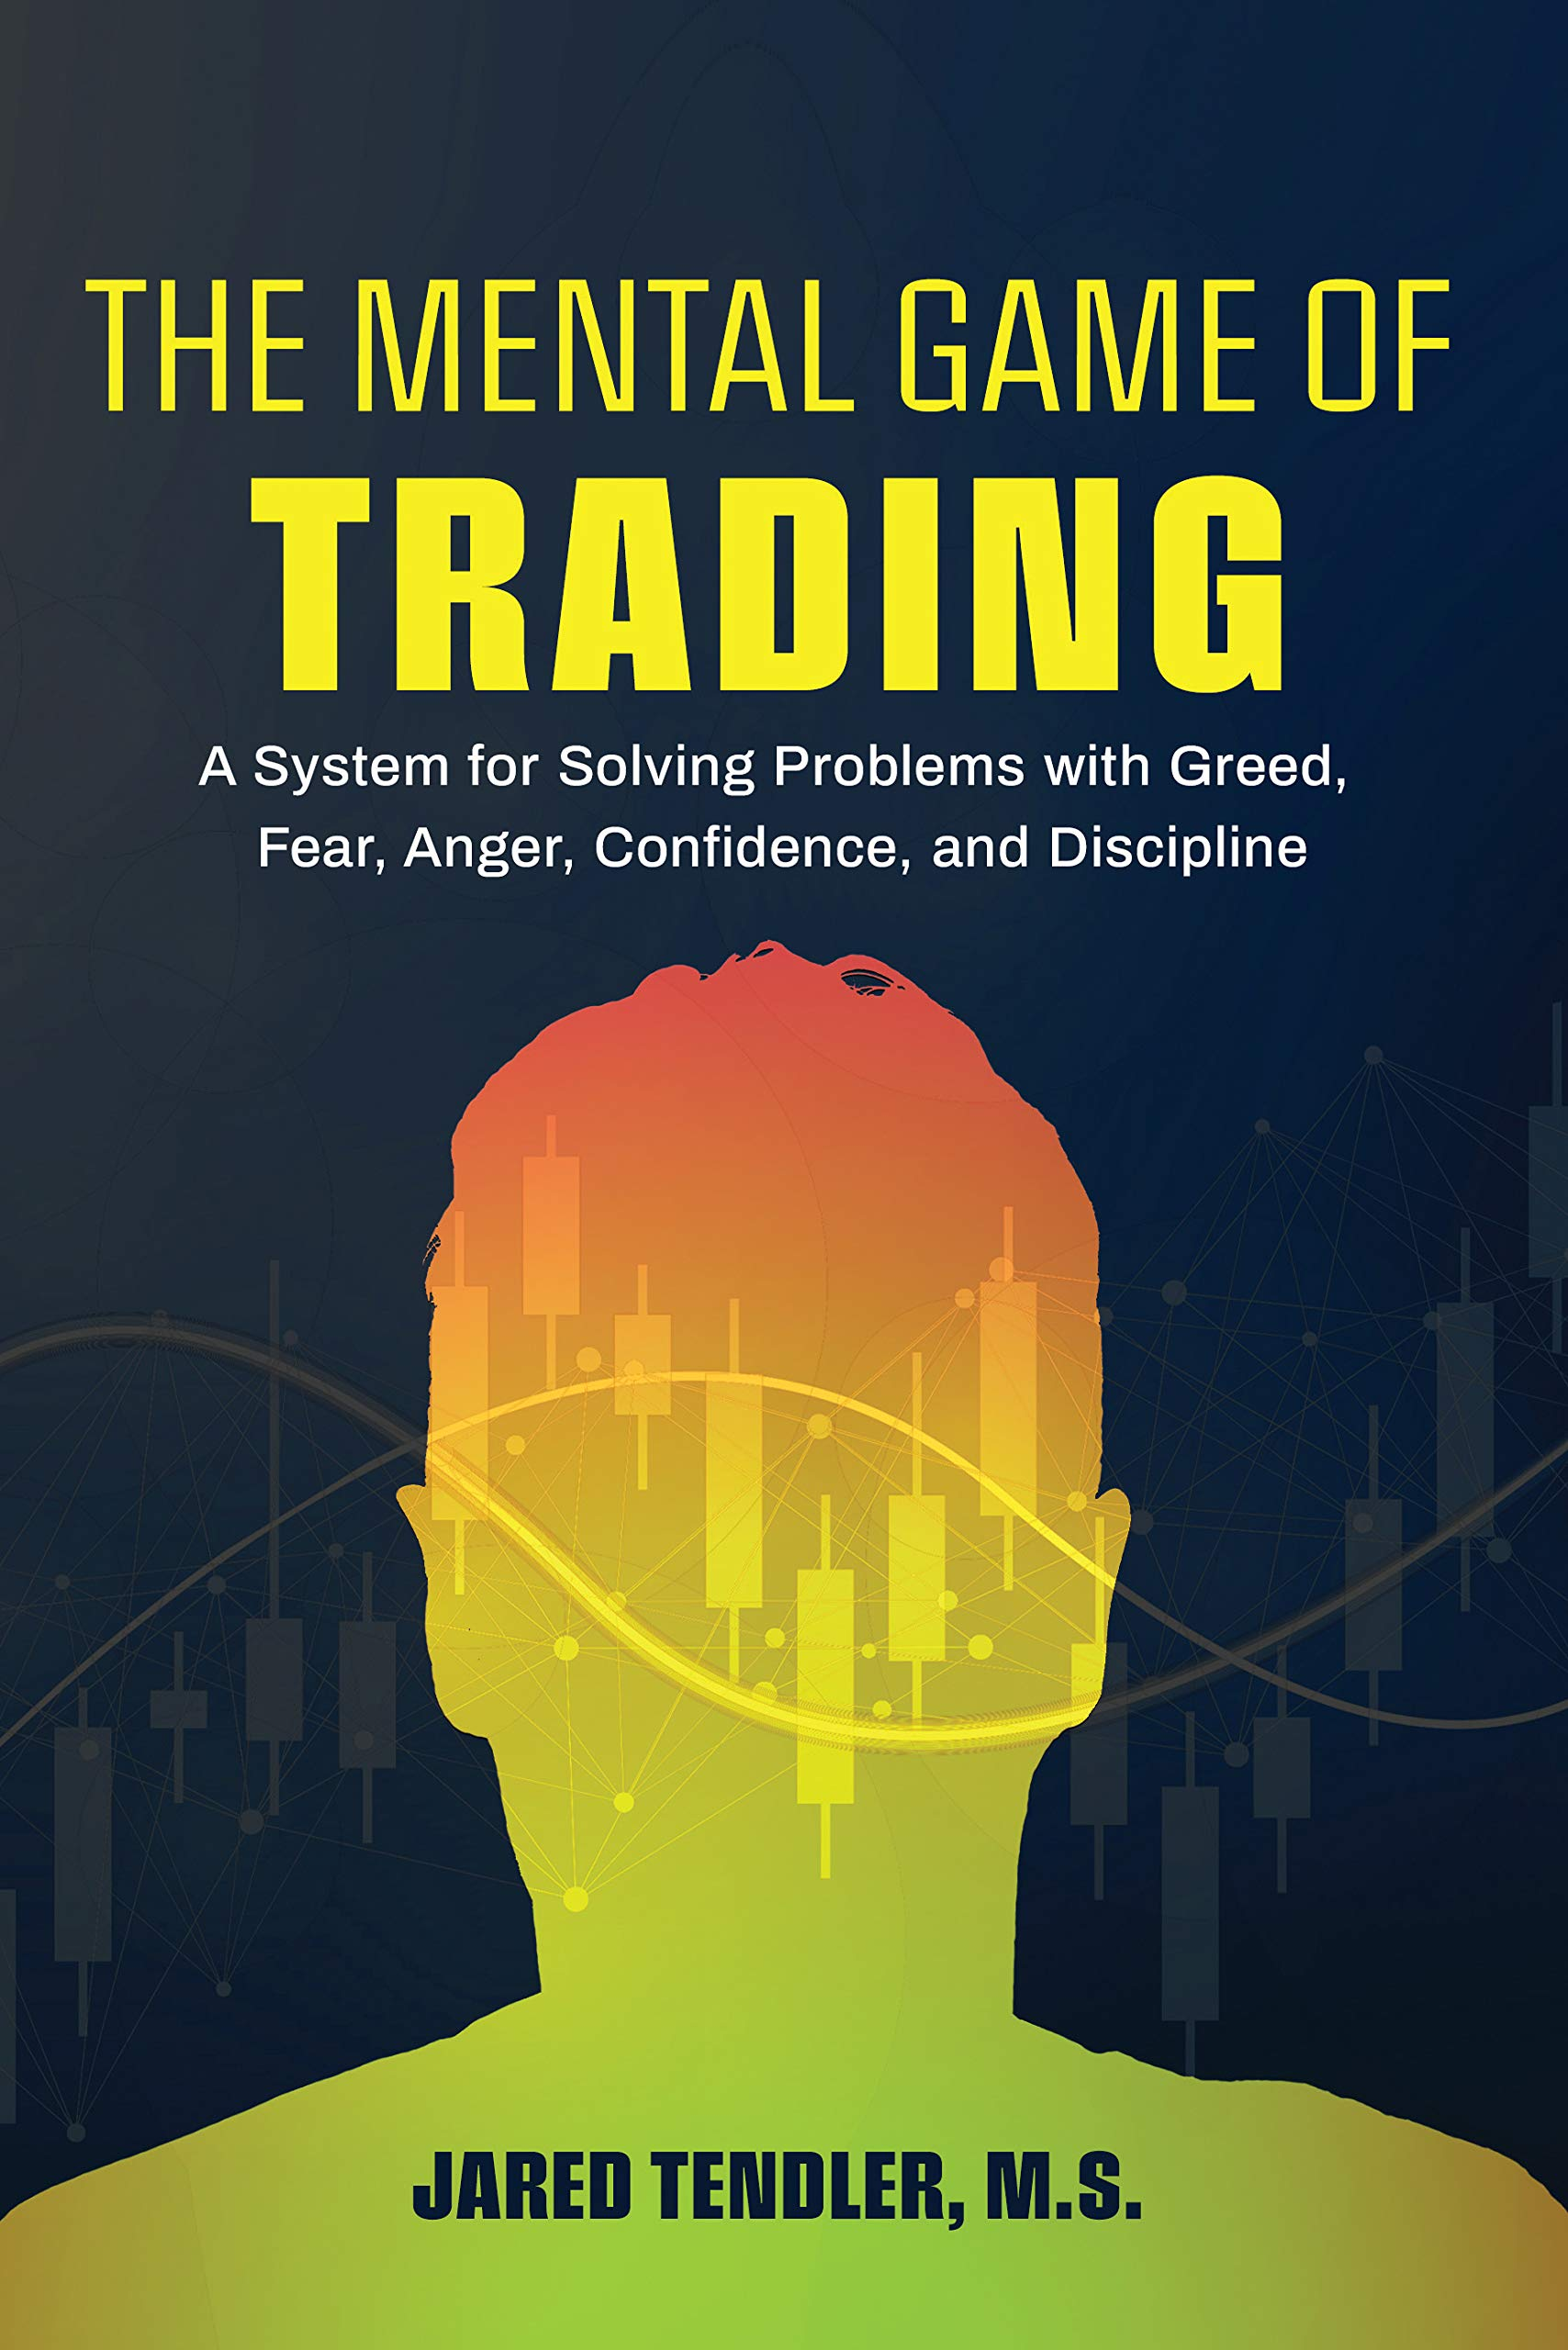 The Mental Game of Trading: A System for Solving Problems with Greed, Fear, Anger, Confidence, and Discipline